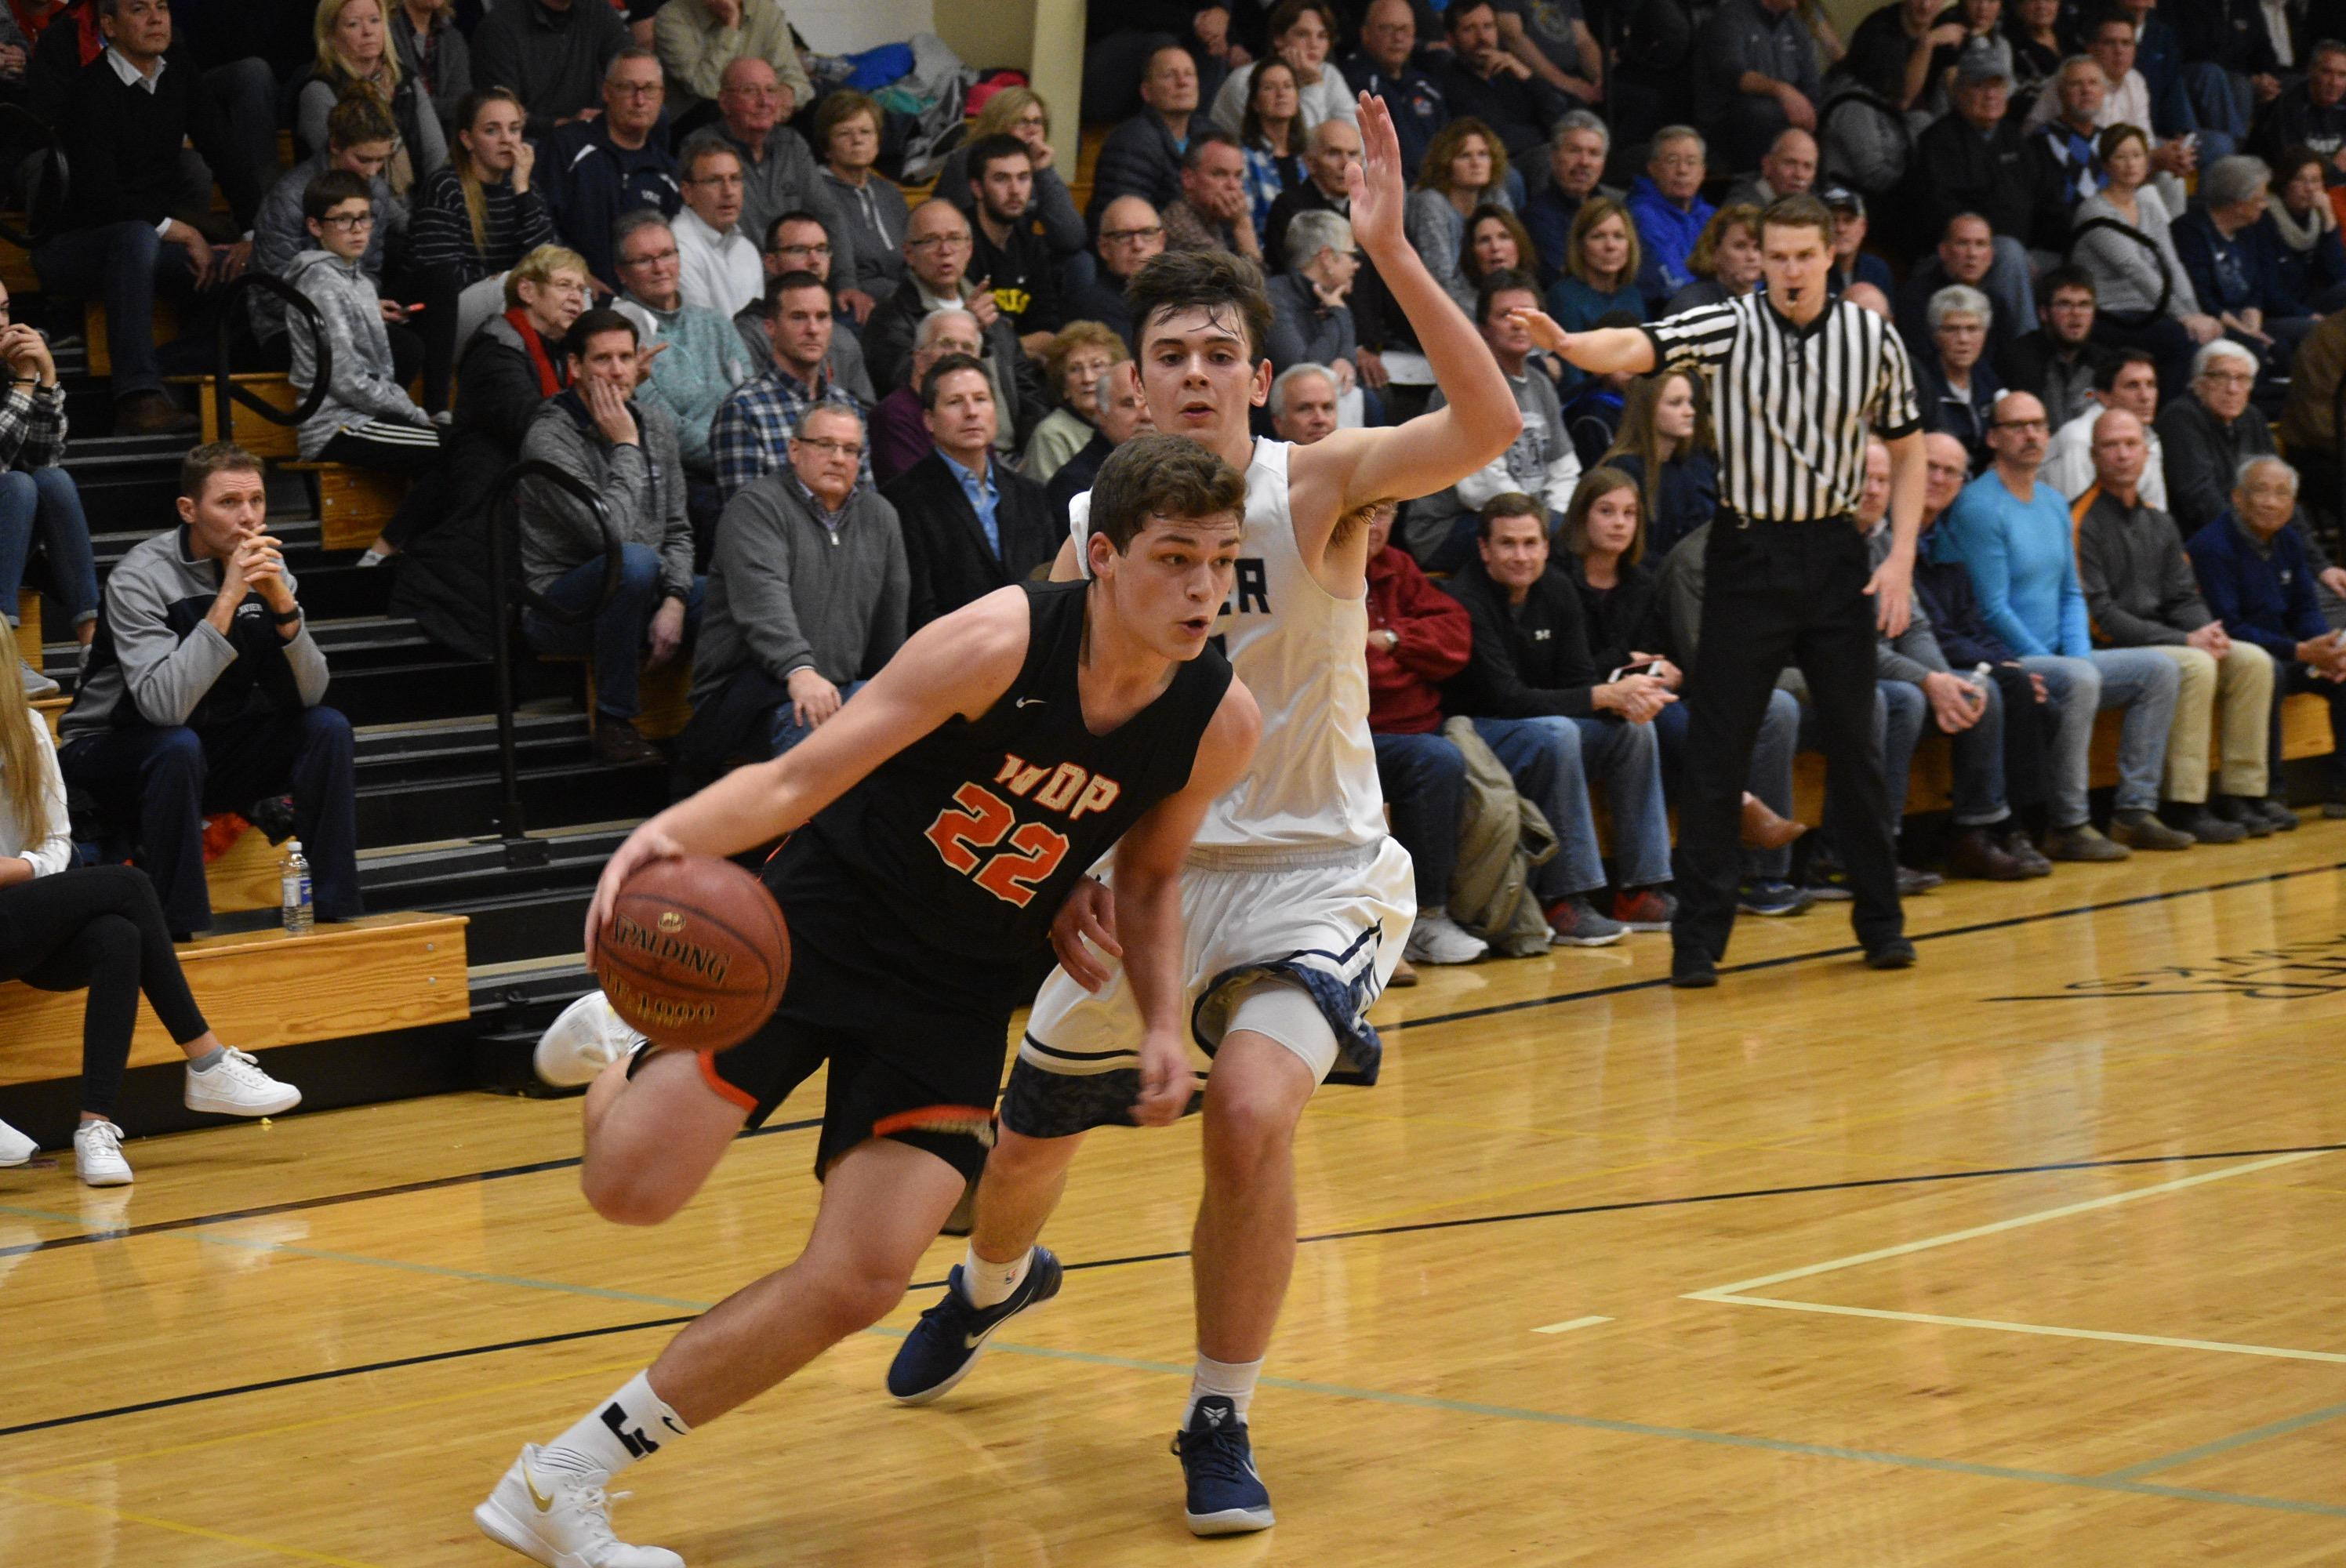 Xavier beat West De Pere, 92-67, in a Bay Conference boys basketball game Tuesday. (Doug Ritchay/WLUK)